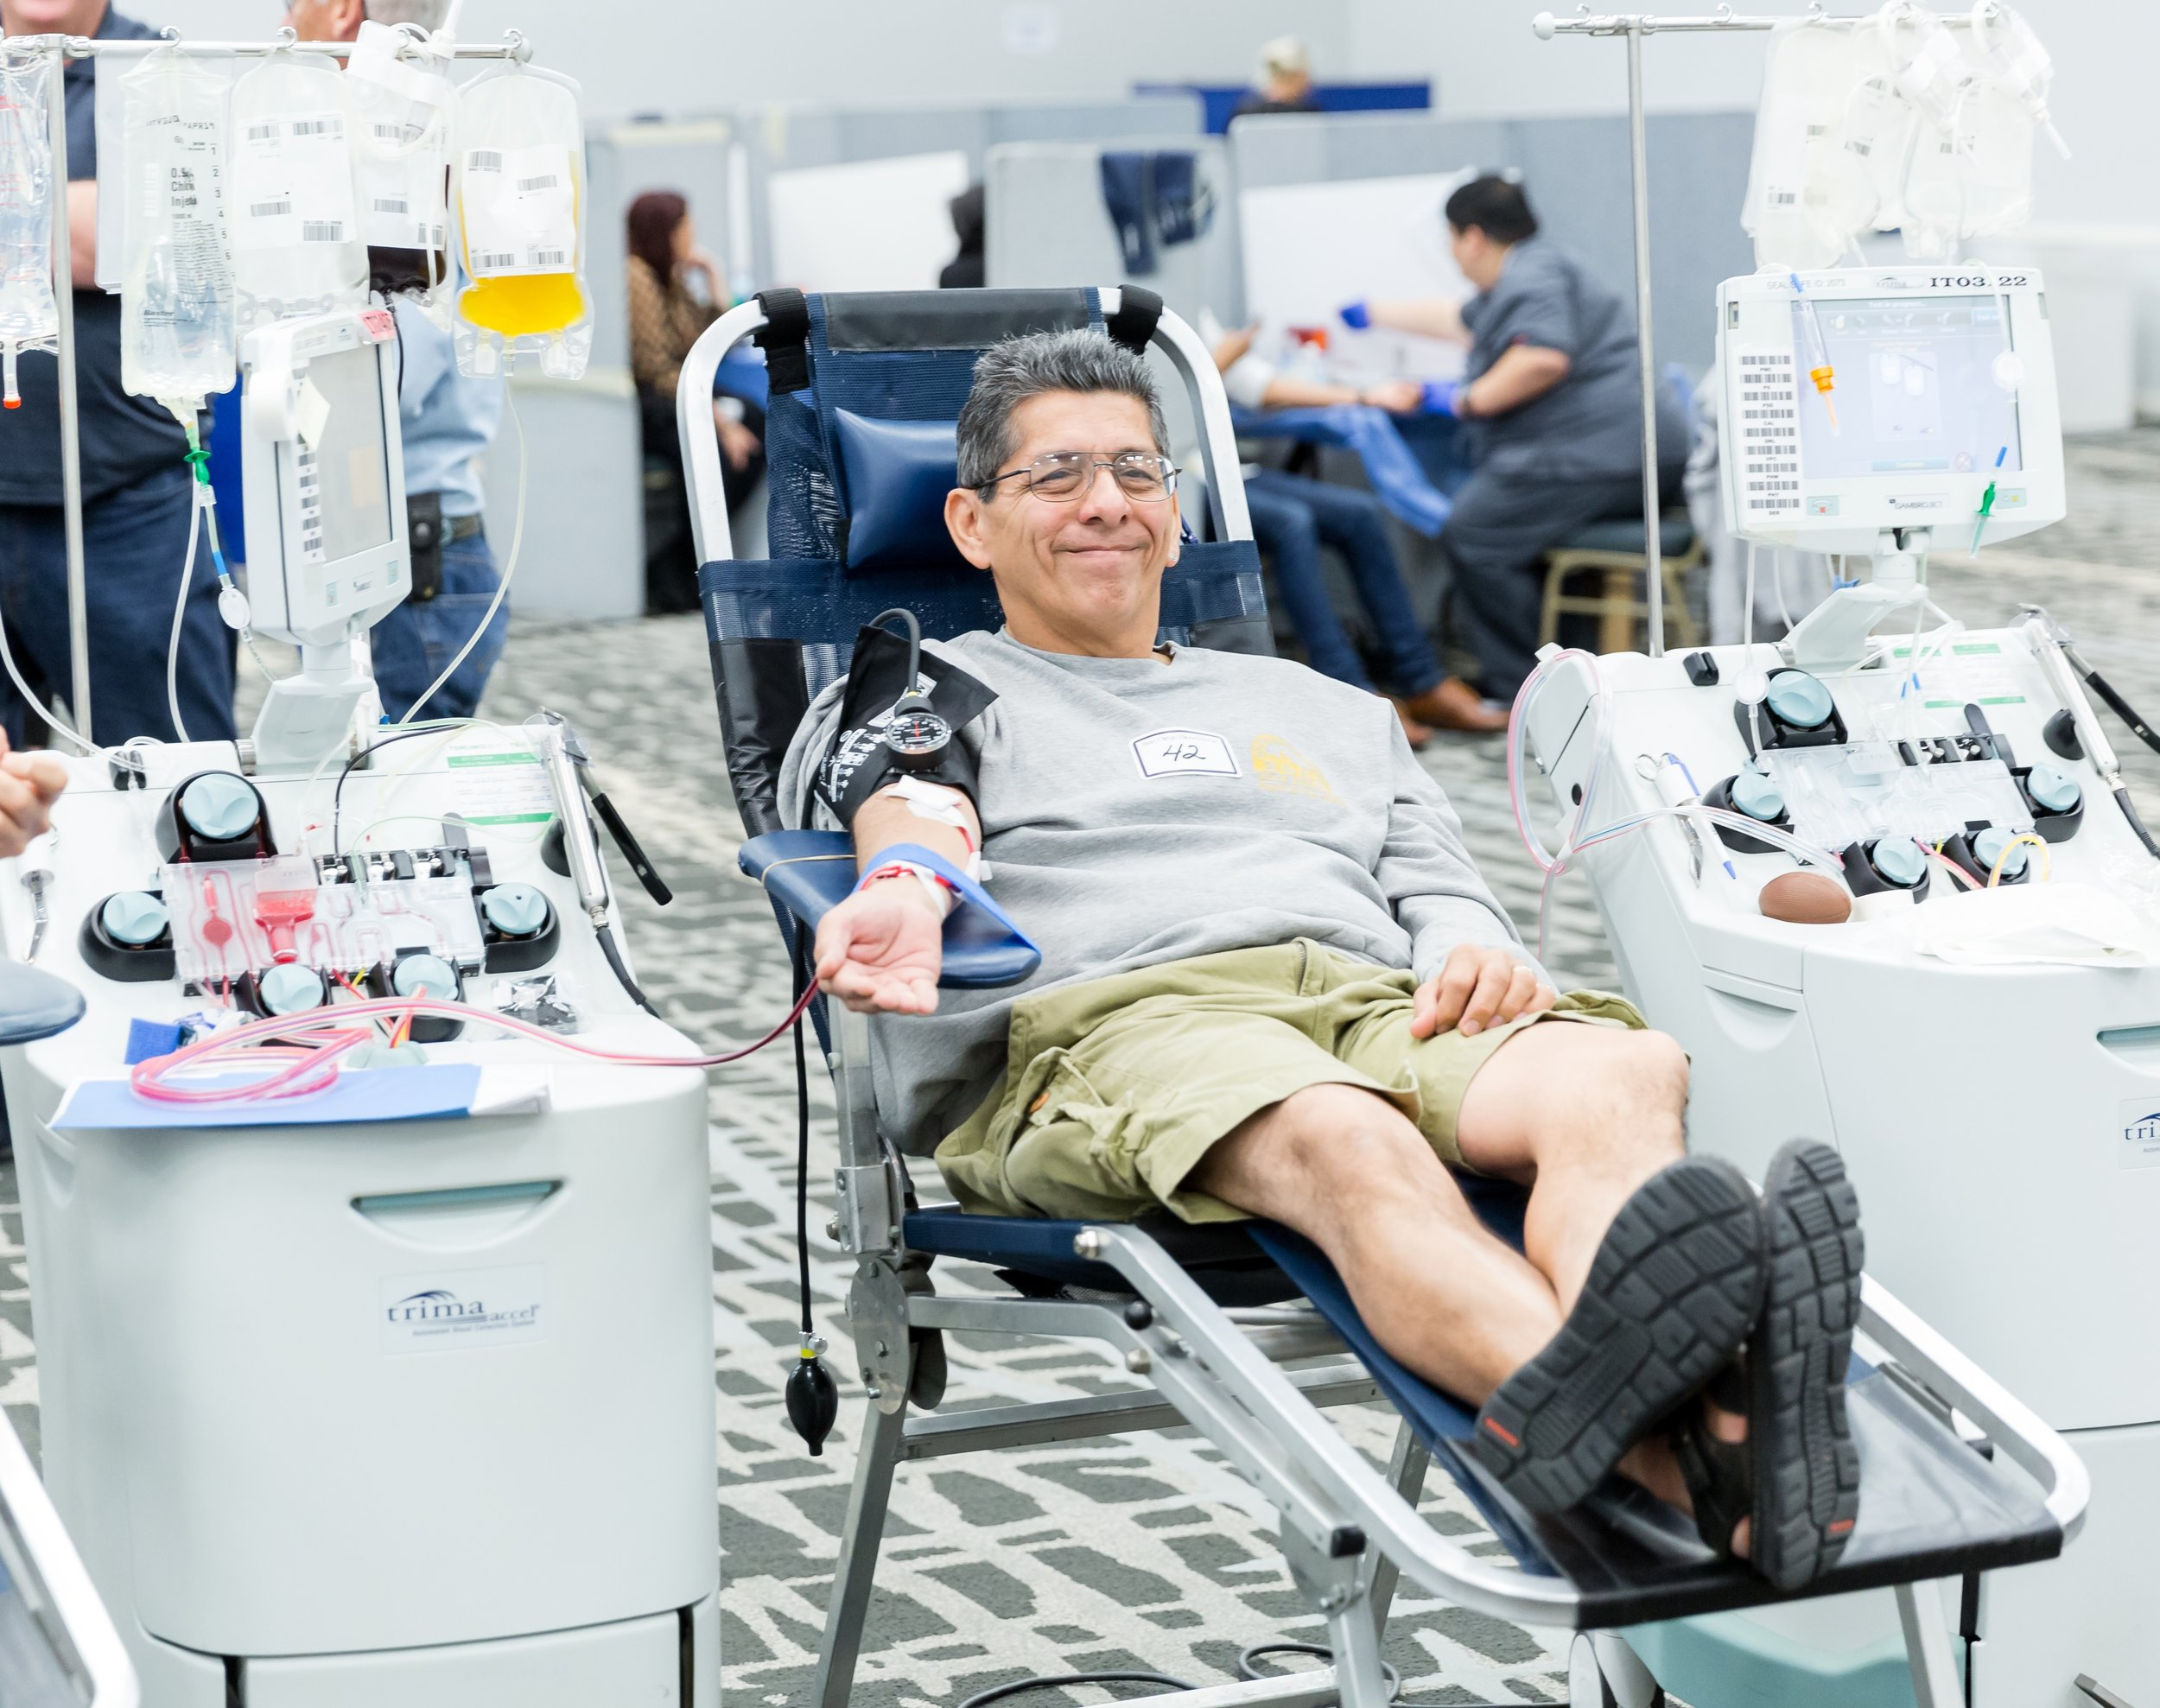 A blood donor volunteered at a mobile blood drive for plasma donation (plasmapheresis) which takes about 20 minutes to complete. The trima machine collects whole blood, separates red blood cells and plasma, and then the remaining blood components are returned to the donor. Currently, SDBB is looking to replace 14 trima machines for our donor centers and mobile drives. Make your gift today!